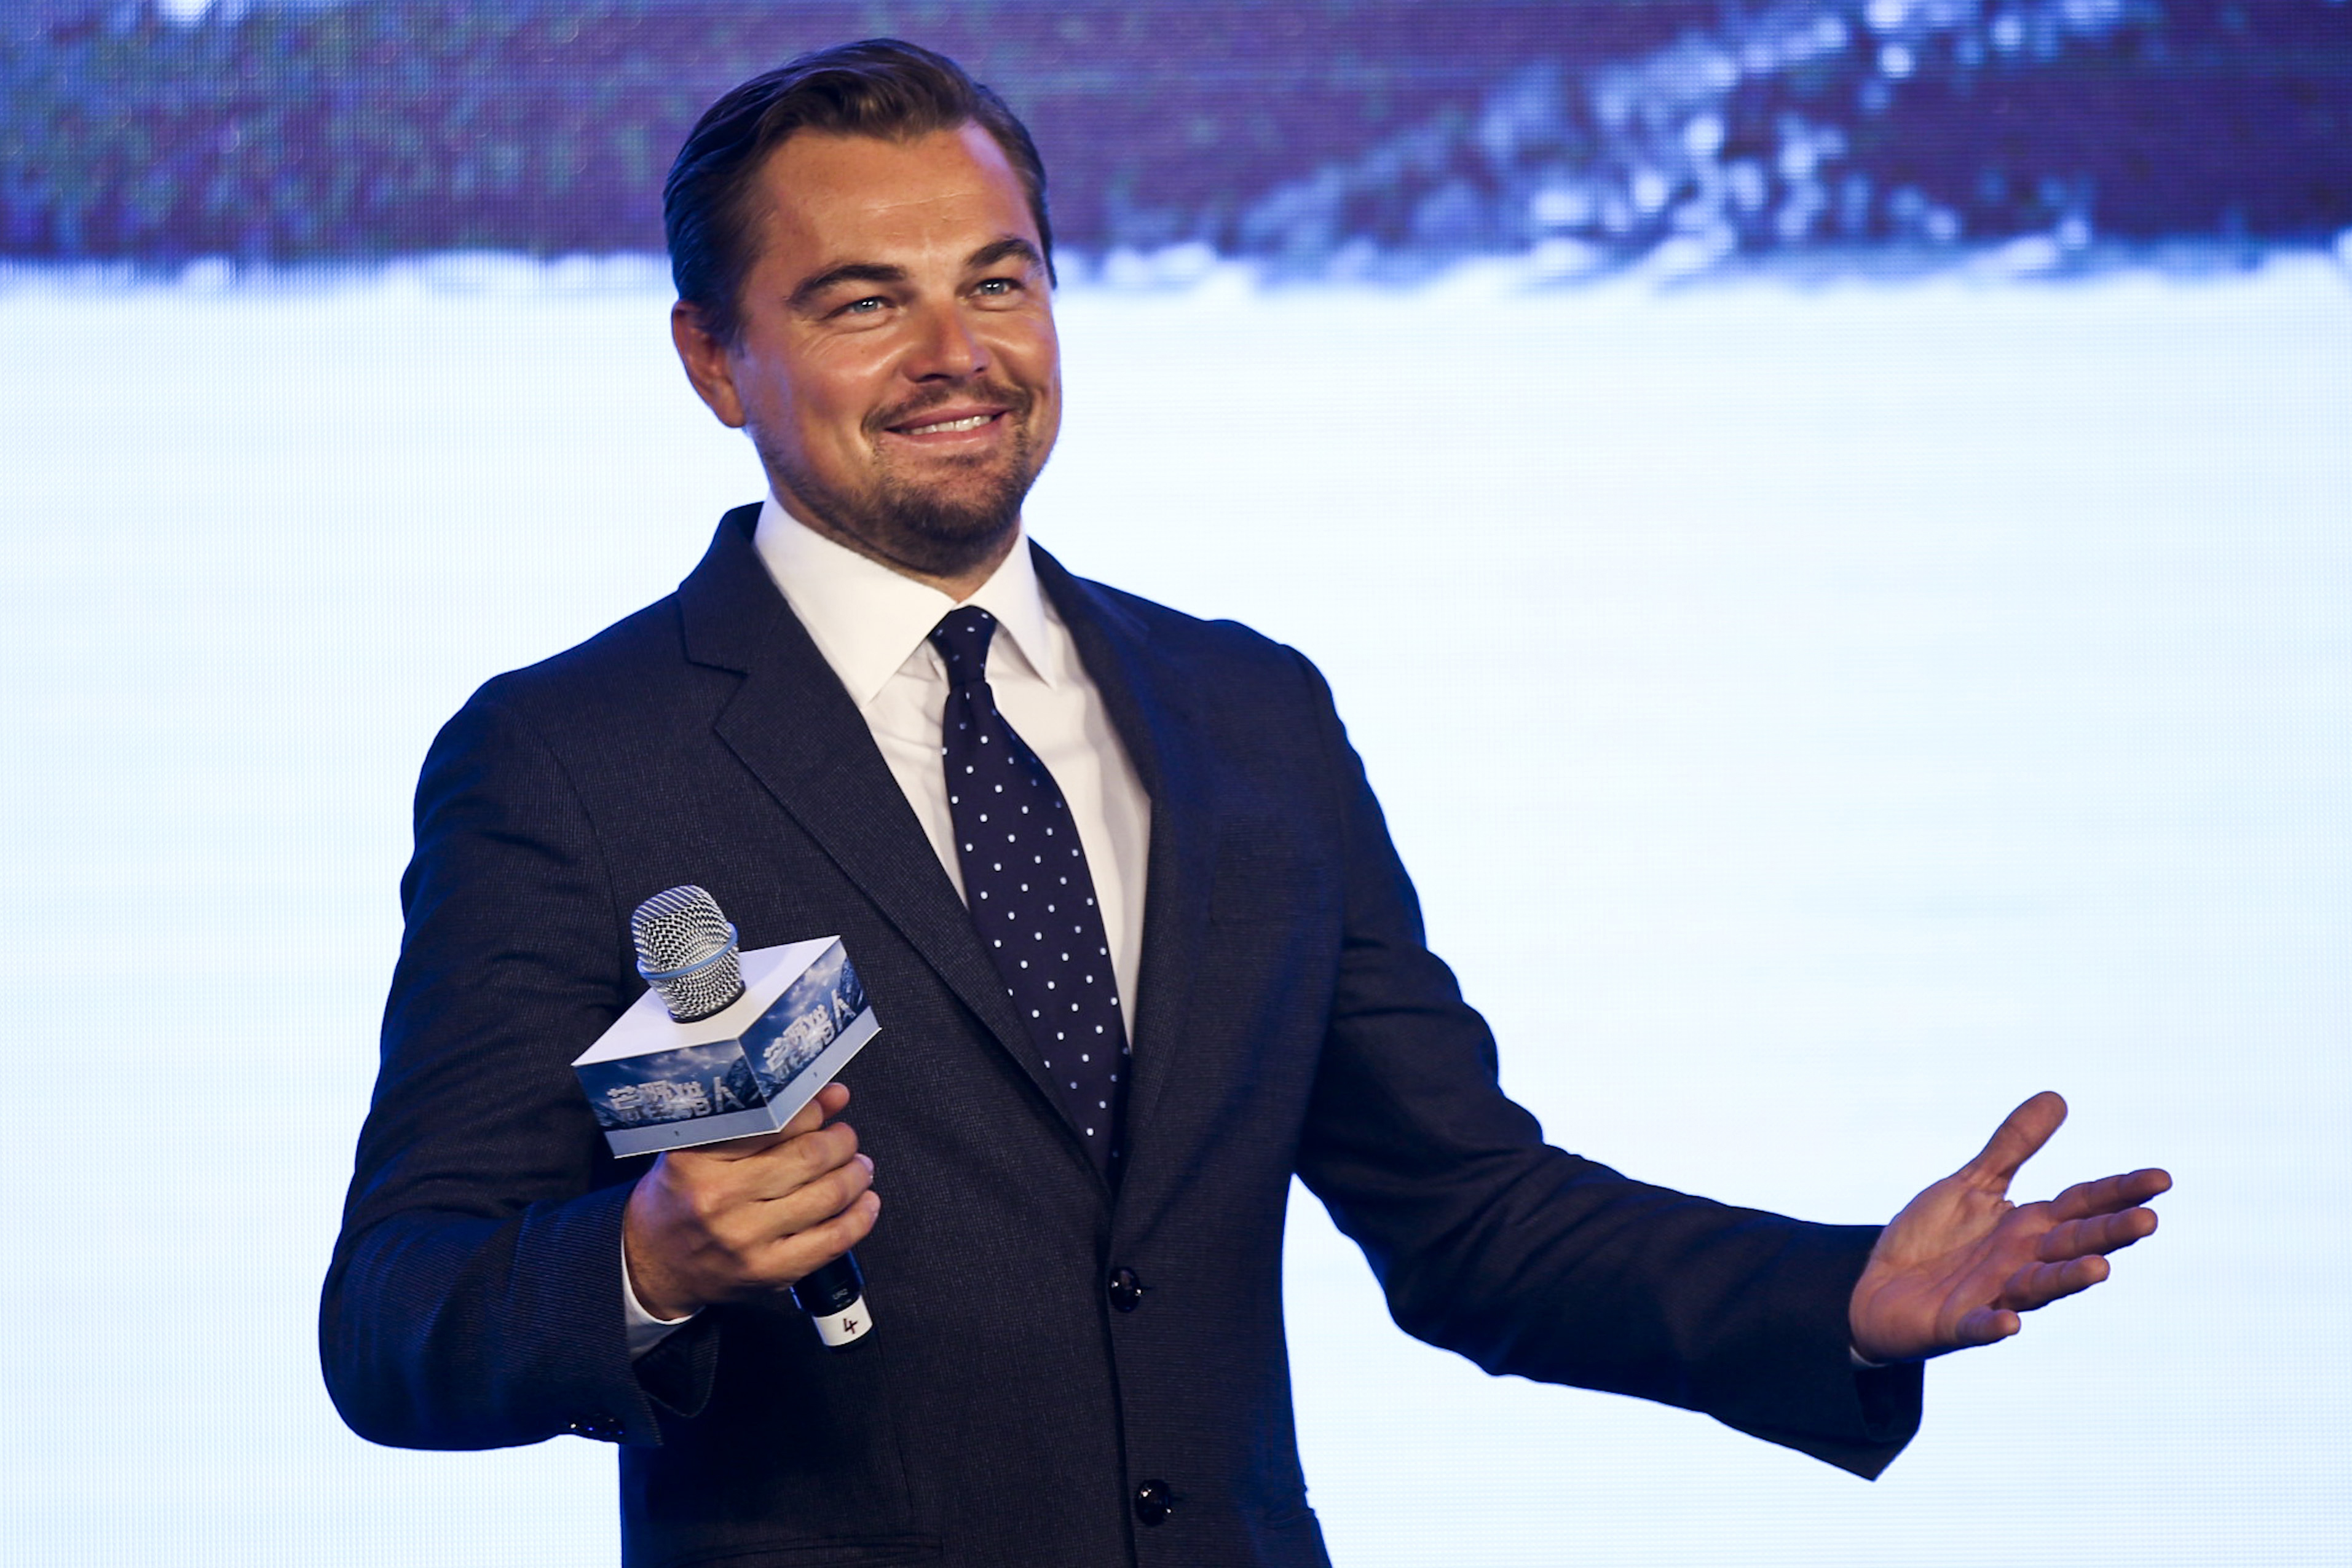 BEIJING, CHINA - MARCH 20:  (CHINA OUT) Actor Leonardo DiCaprio attends a press conference of new movie  The Revenant  on March 20, 2016 in Beijing, China.  (Photo by VCG/VCG via Getty Images)